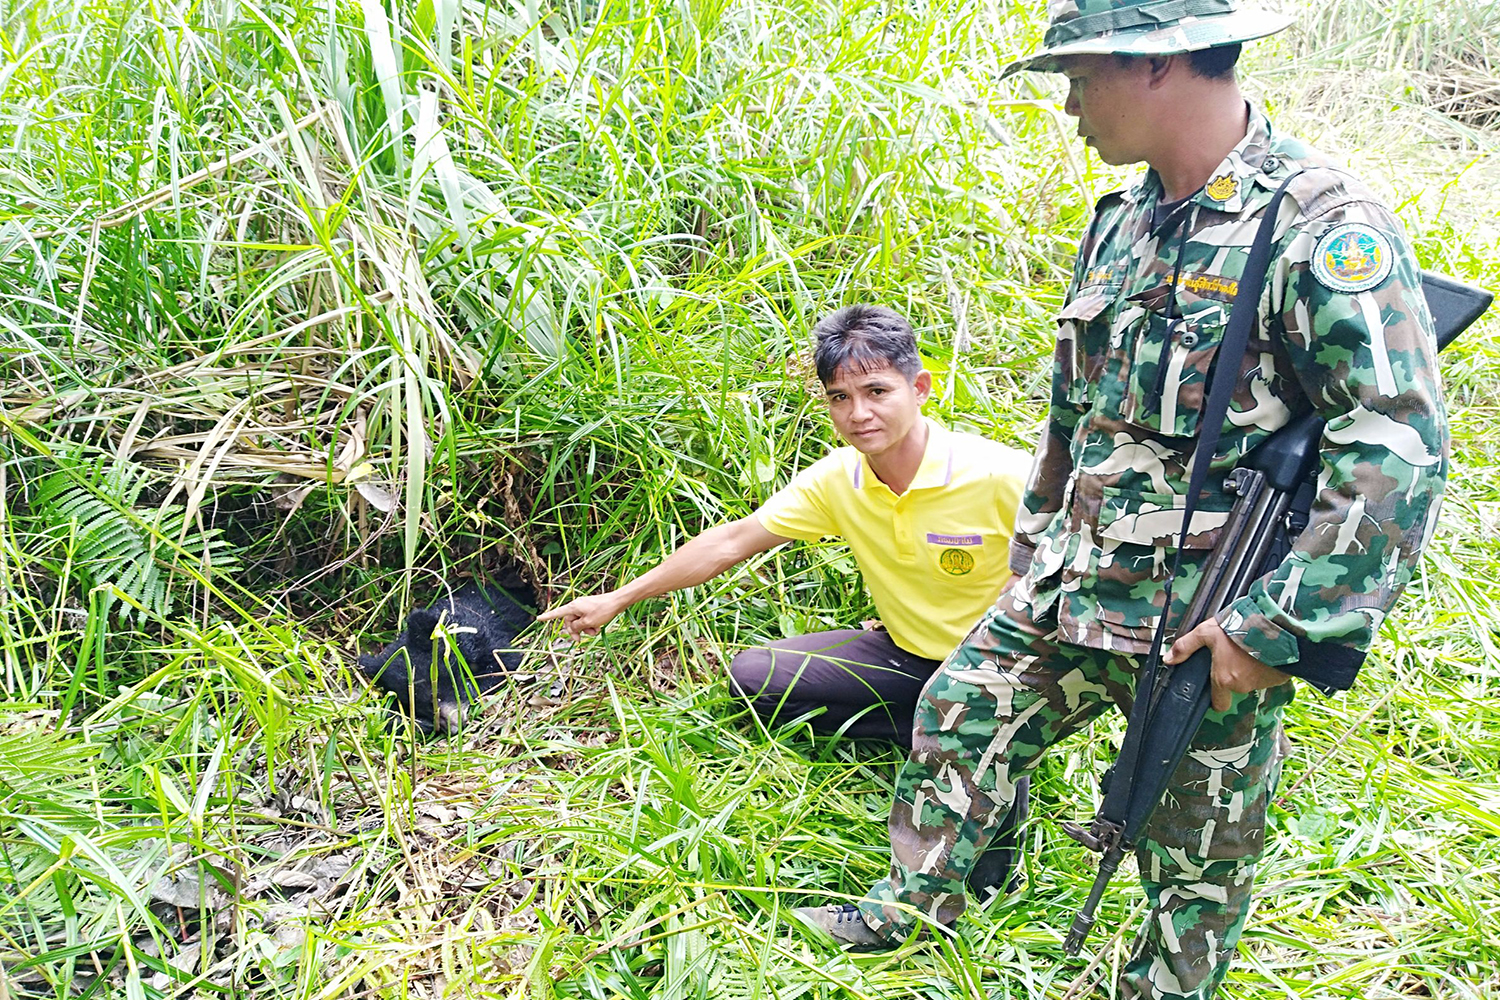 Rangers of Dong Yai Wildlife Reserve with the body of an Asian black bear, by a stream in Pa Kham district in Buri Ram province, on Tuesday. (Photo by Surachai Piraksa)